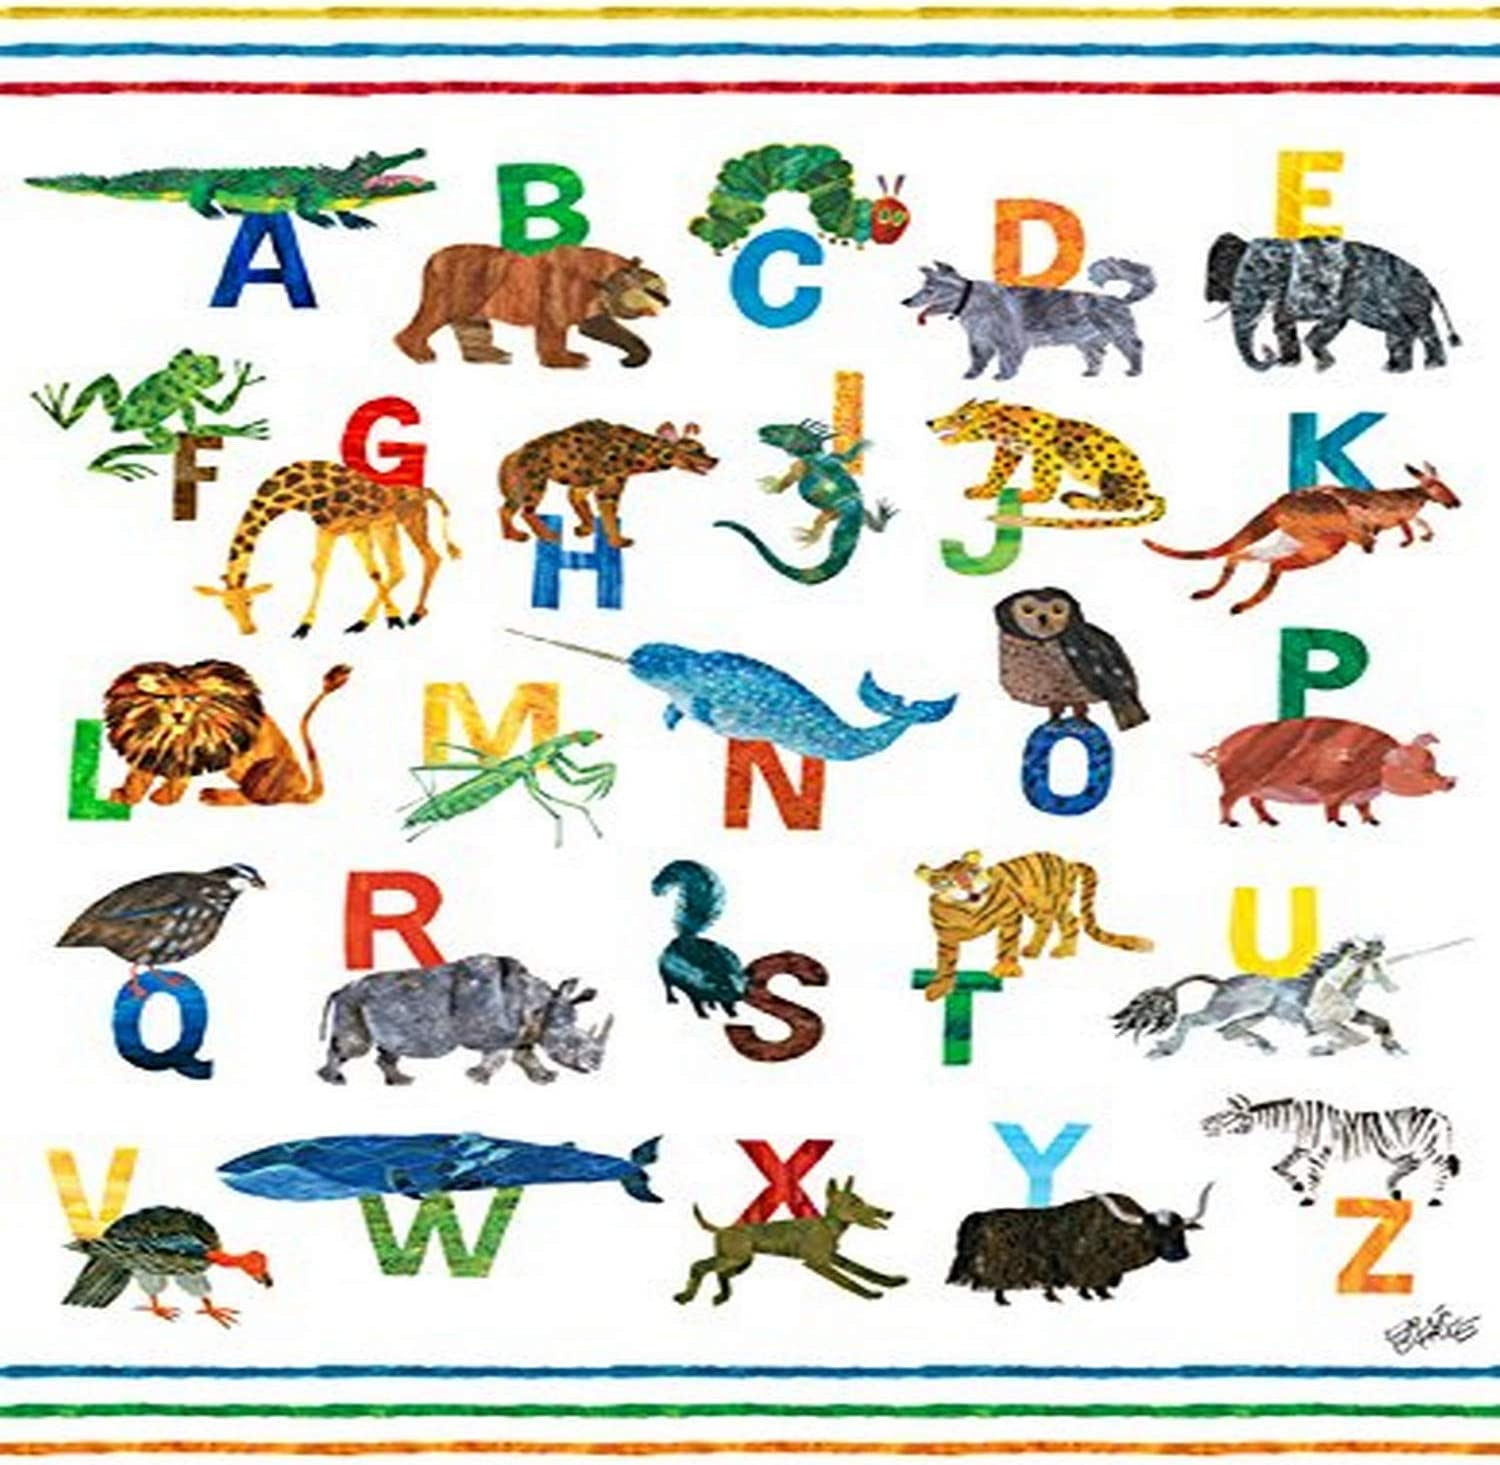 Oopsy Daisy Fine Art For Kids Eric Carle S Abc S Boy Canvas Wall Art By Eric Carle 14 X 18 Posters Prints Amazon Com